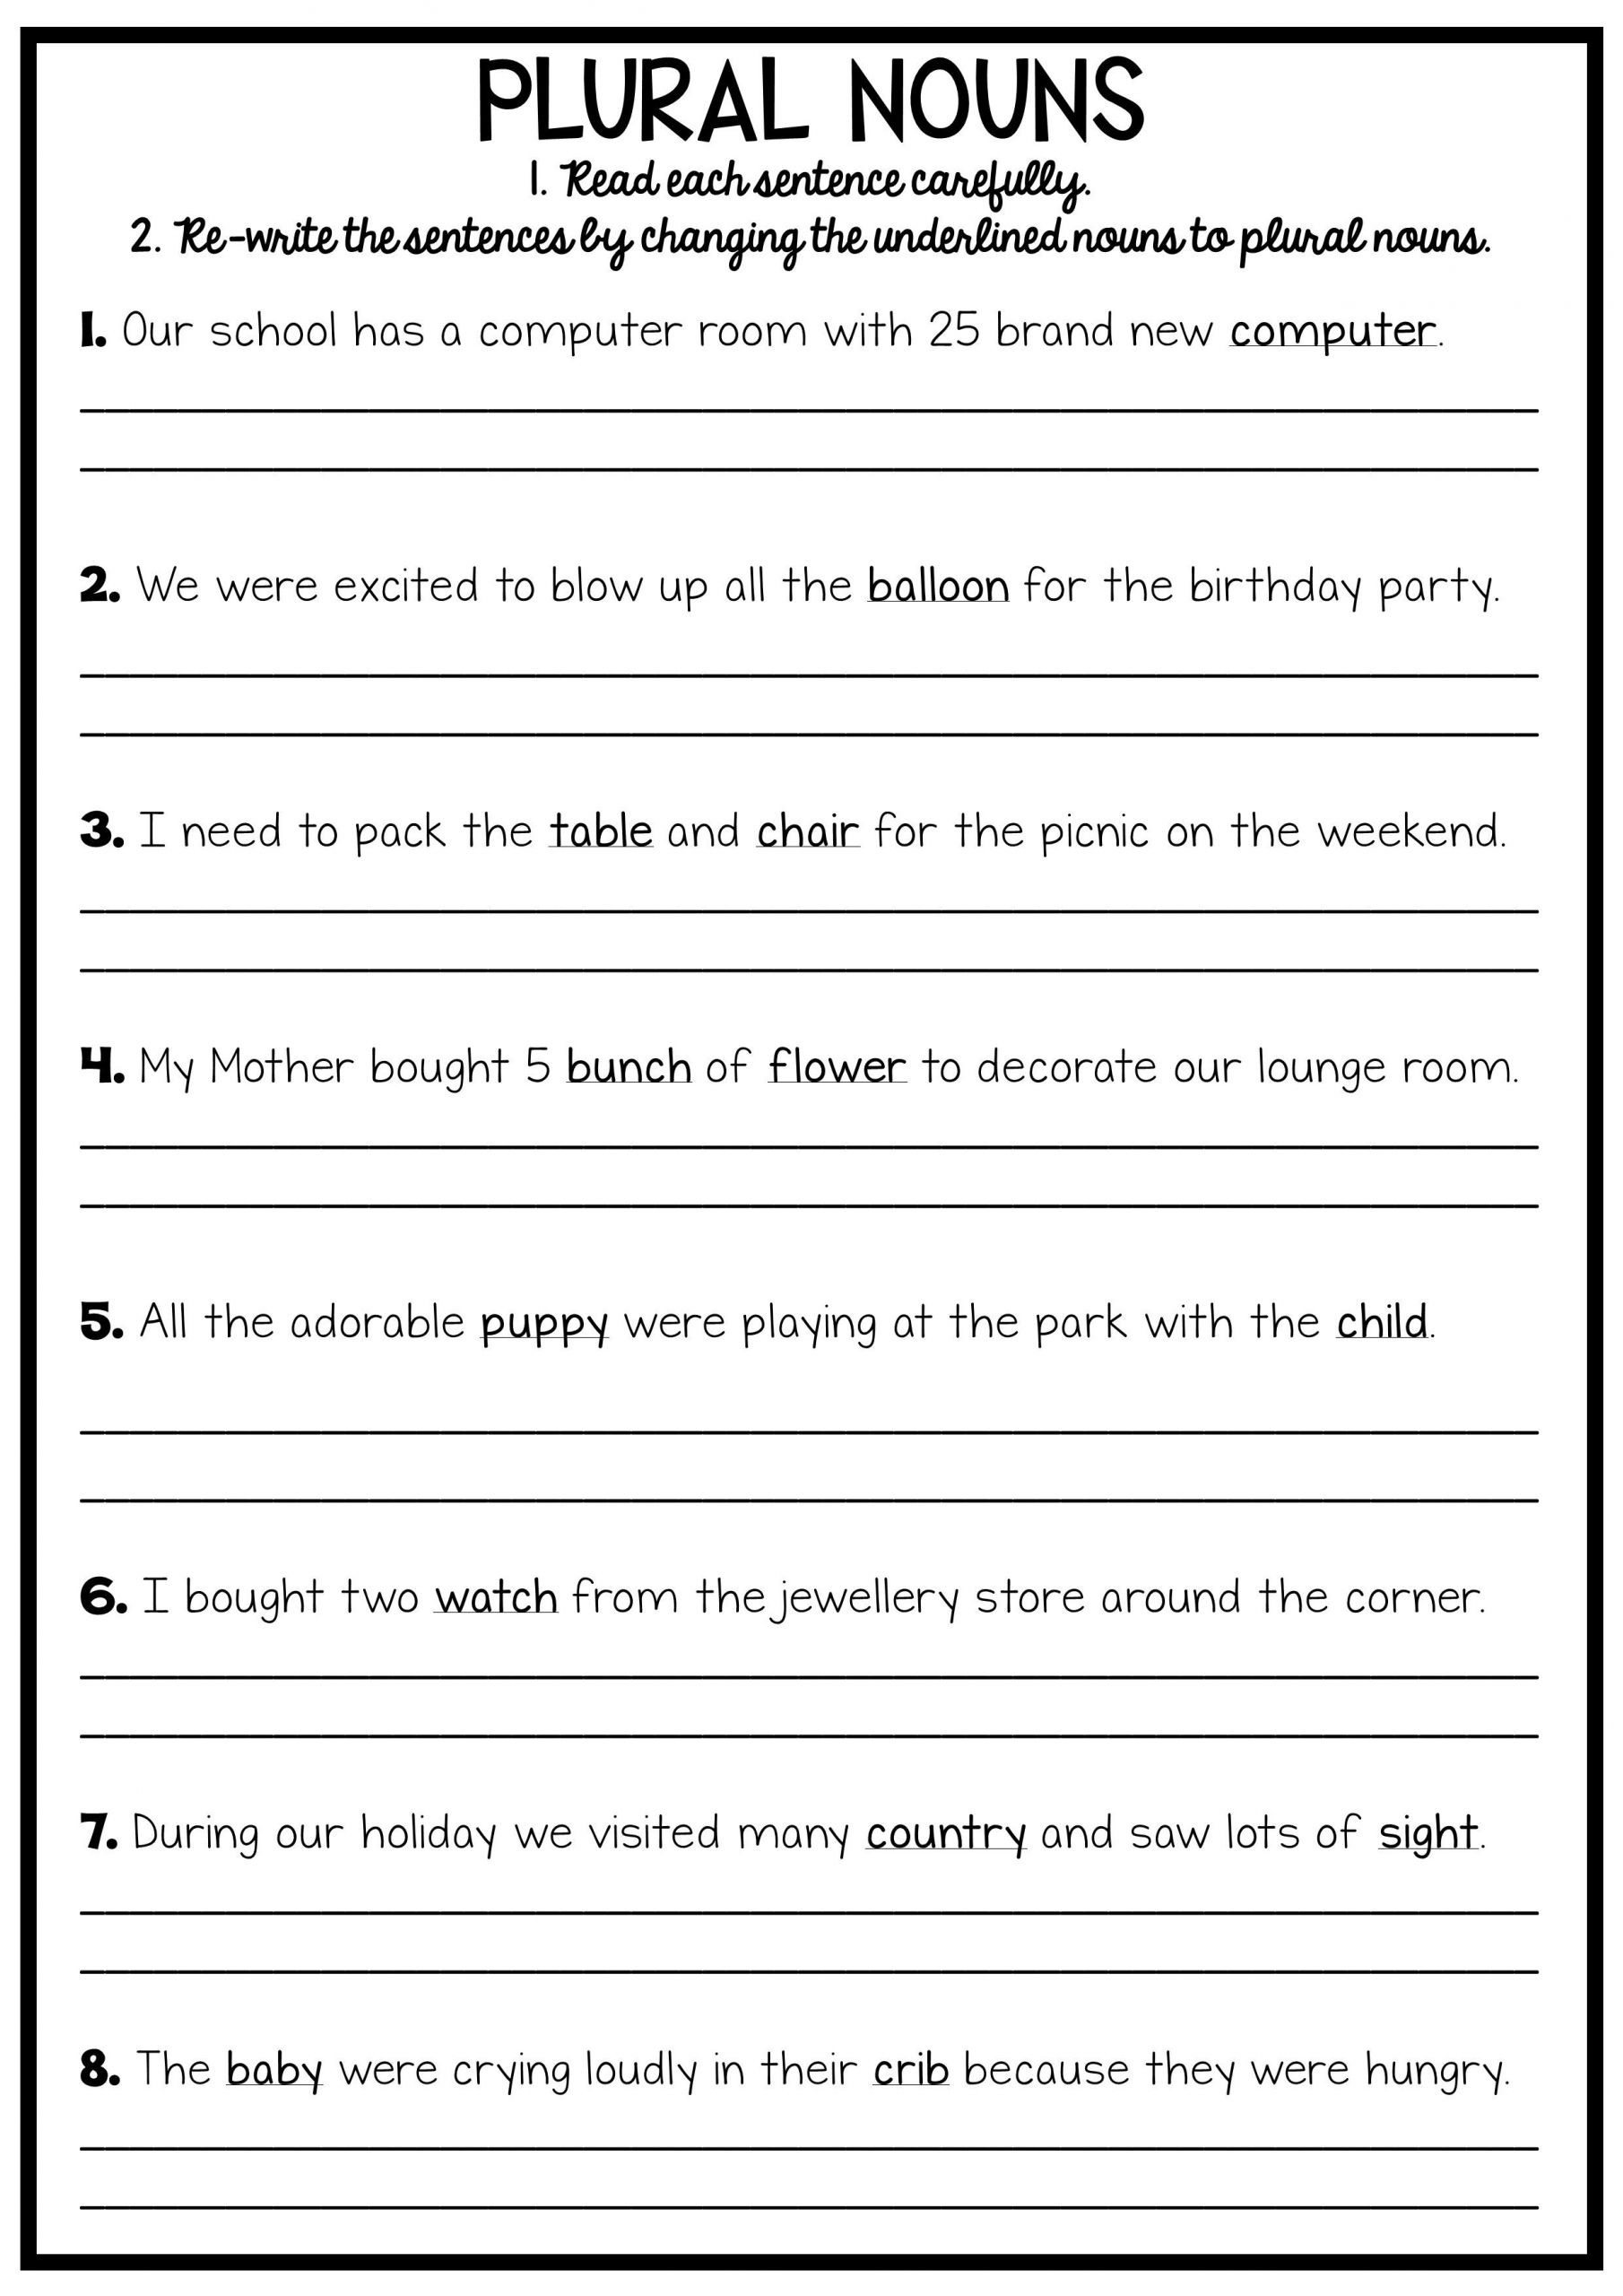 Grammar Worksheets for 8th Graders Grammar Worksheets 8th Grade English Printable Reading